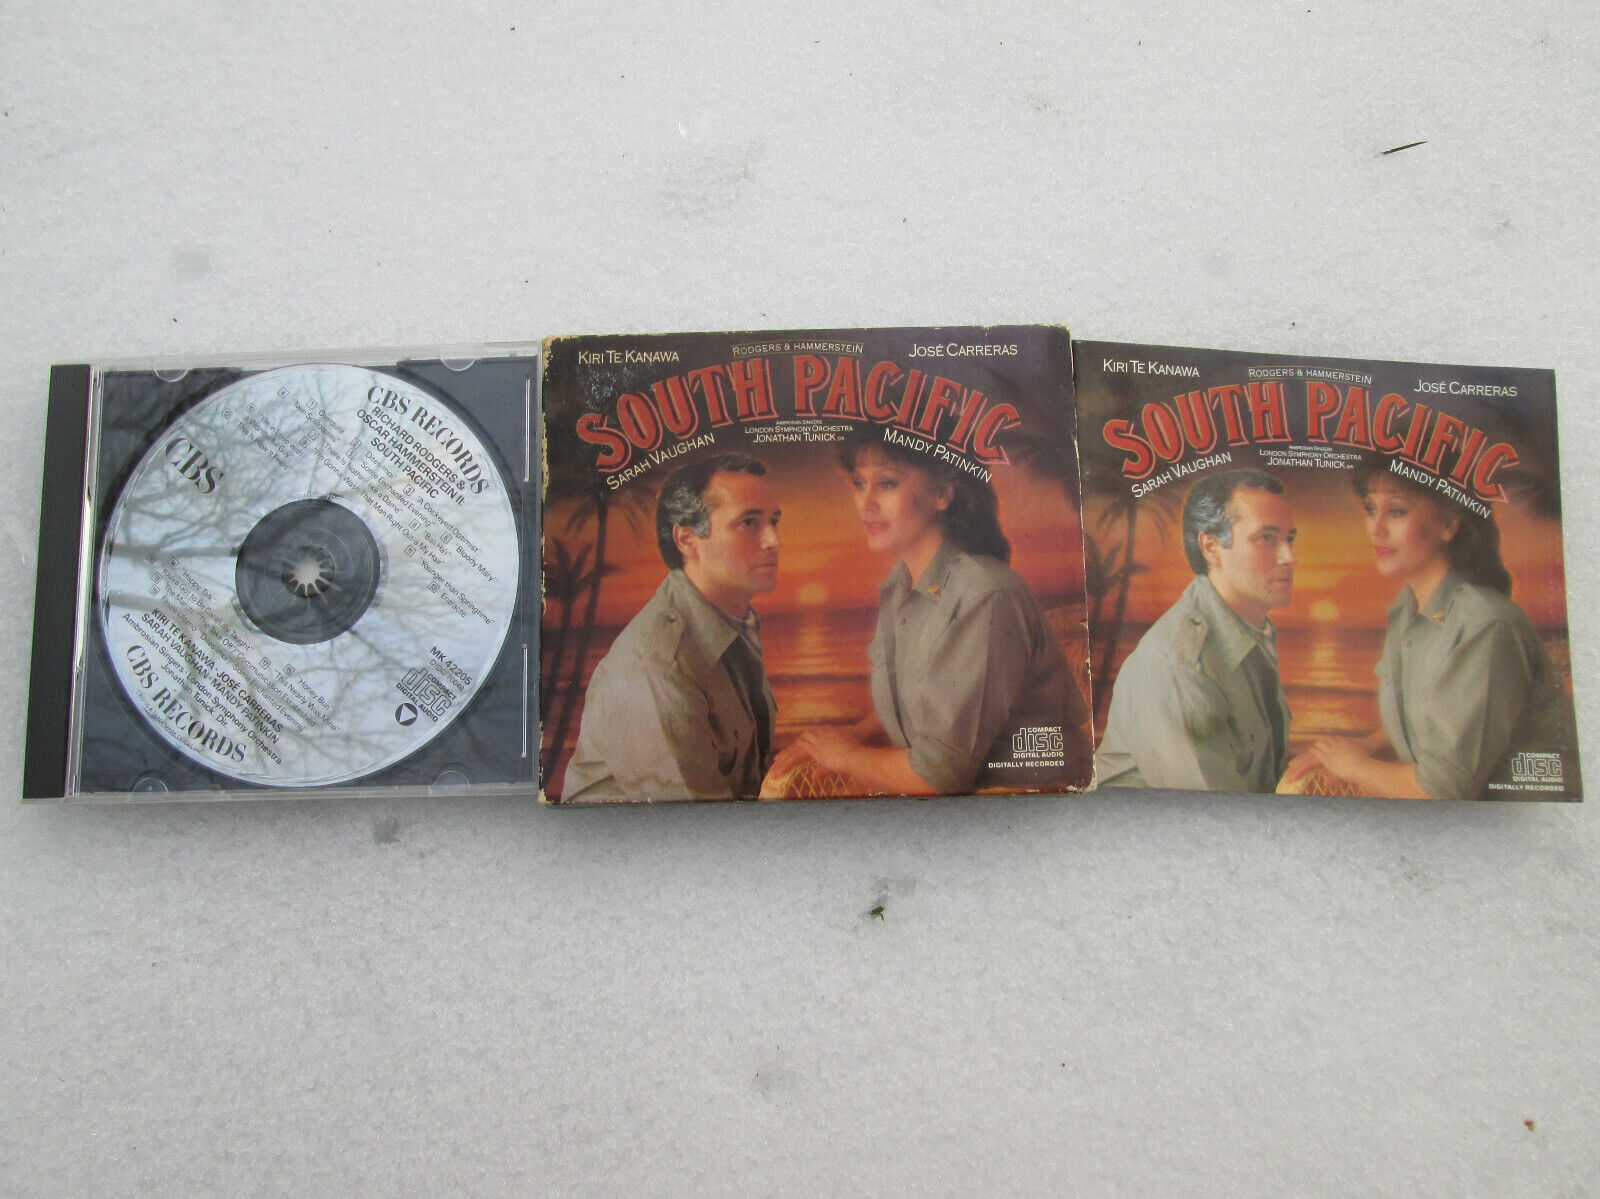 Various South Pacific CD 2006 RARE SLIPCOVER EDITION GOOD USED COPY  - $24.99